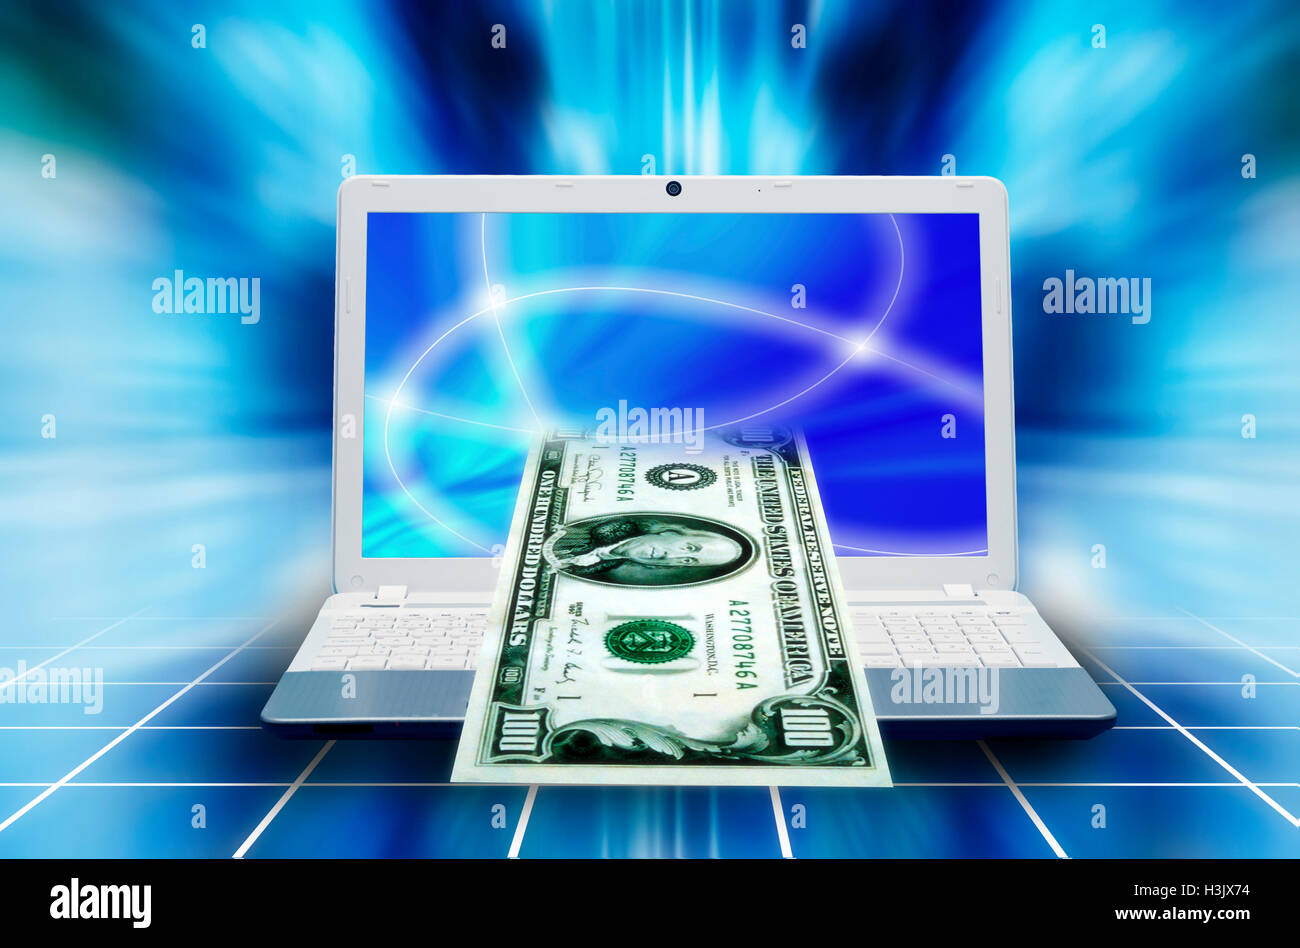 online banking concept - Stock Image